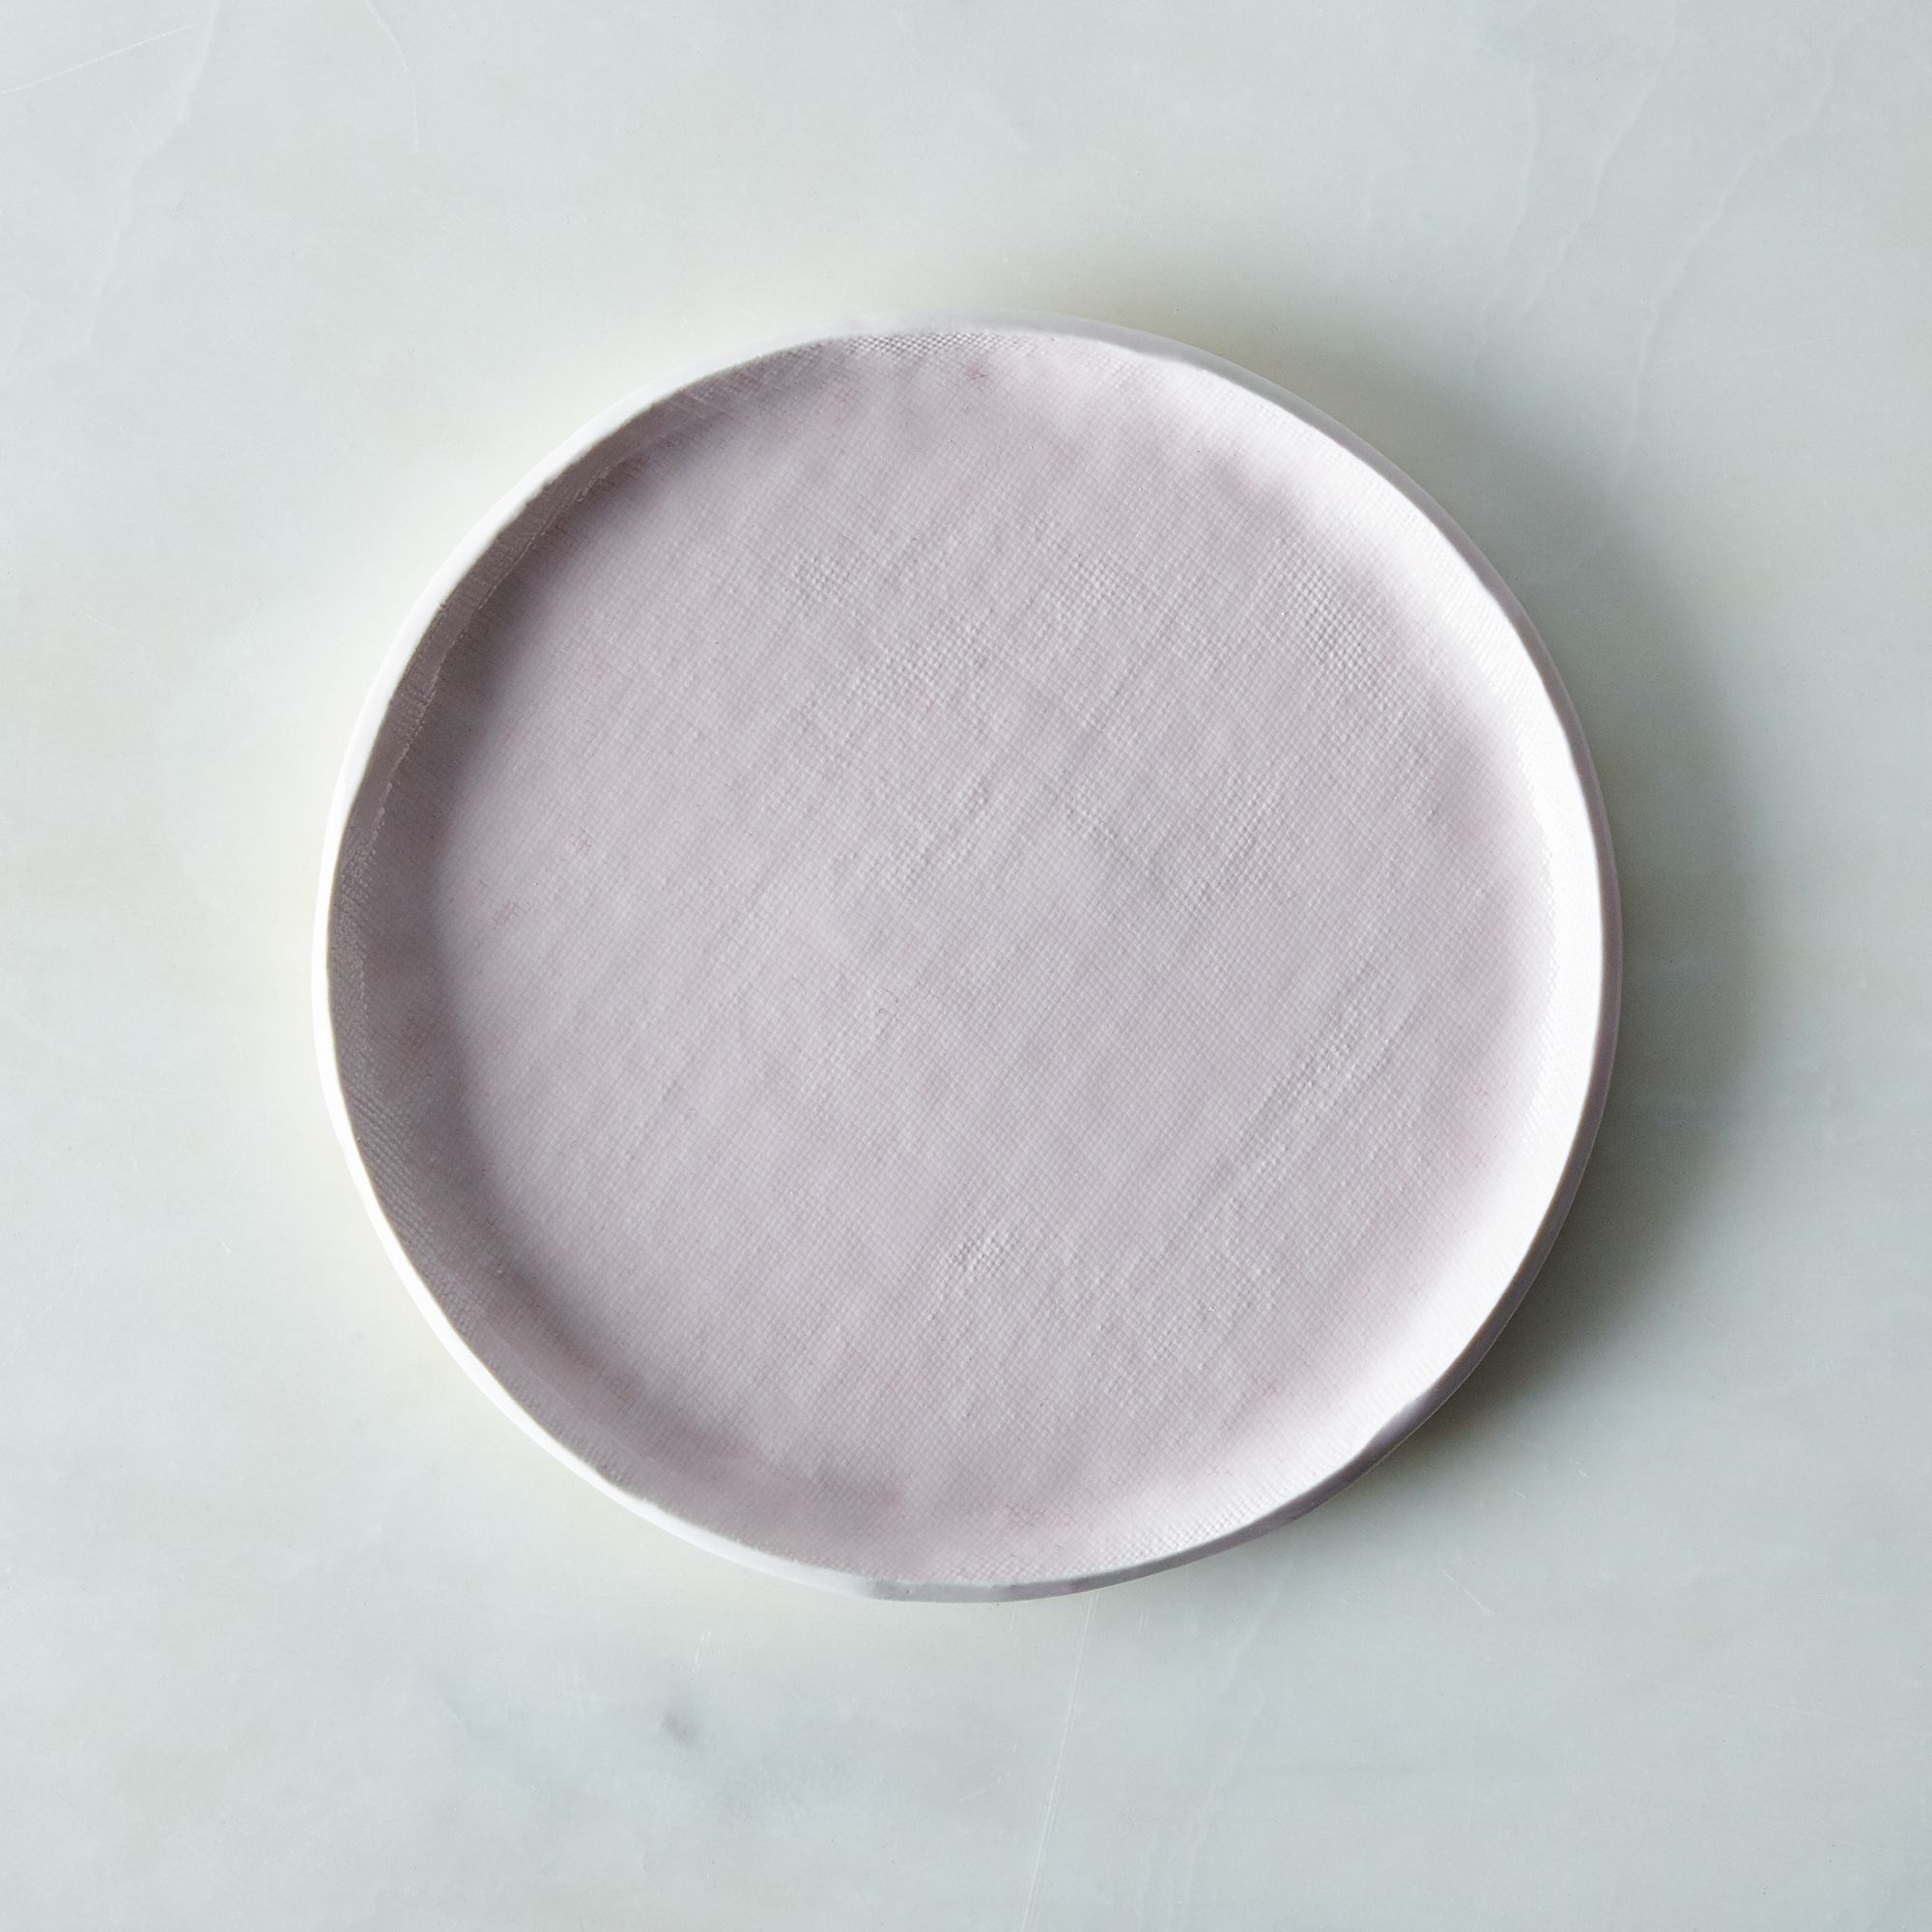 Food52 Pink Textured Porcelain Dinnerware Set, By Looks Like White Pink Textured Porcelain Salad Plate